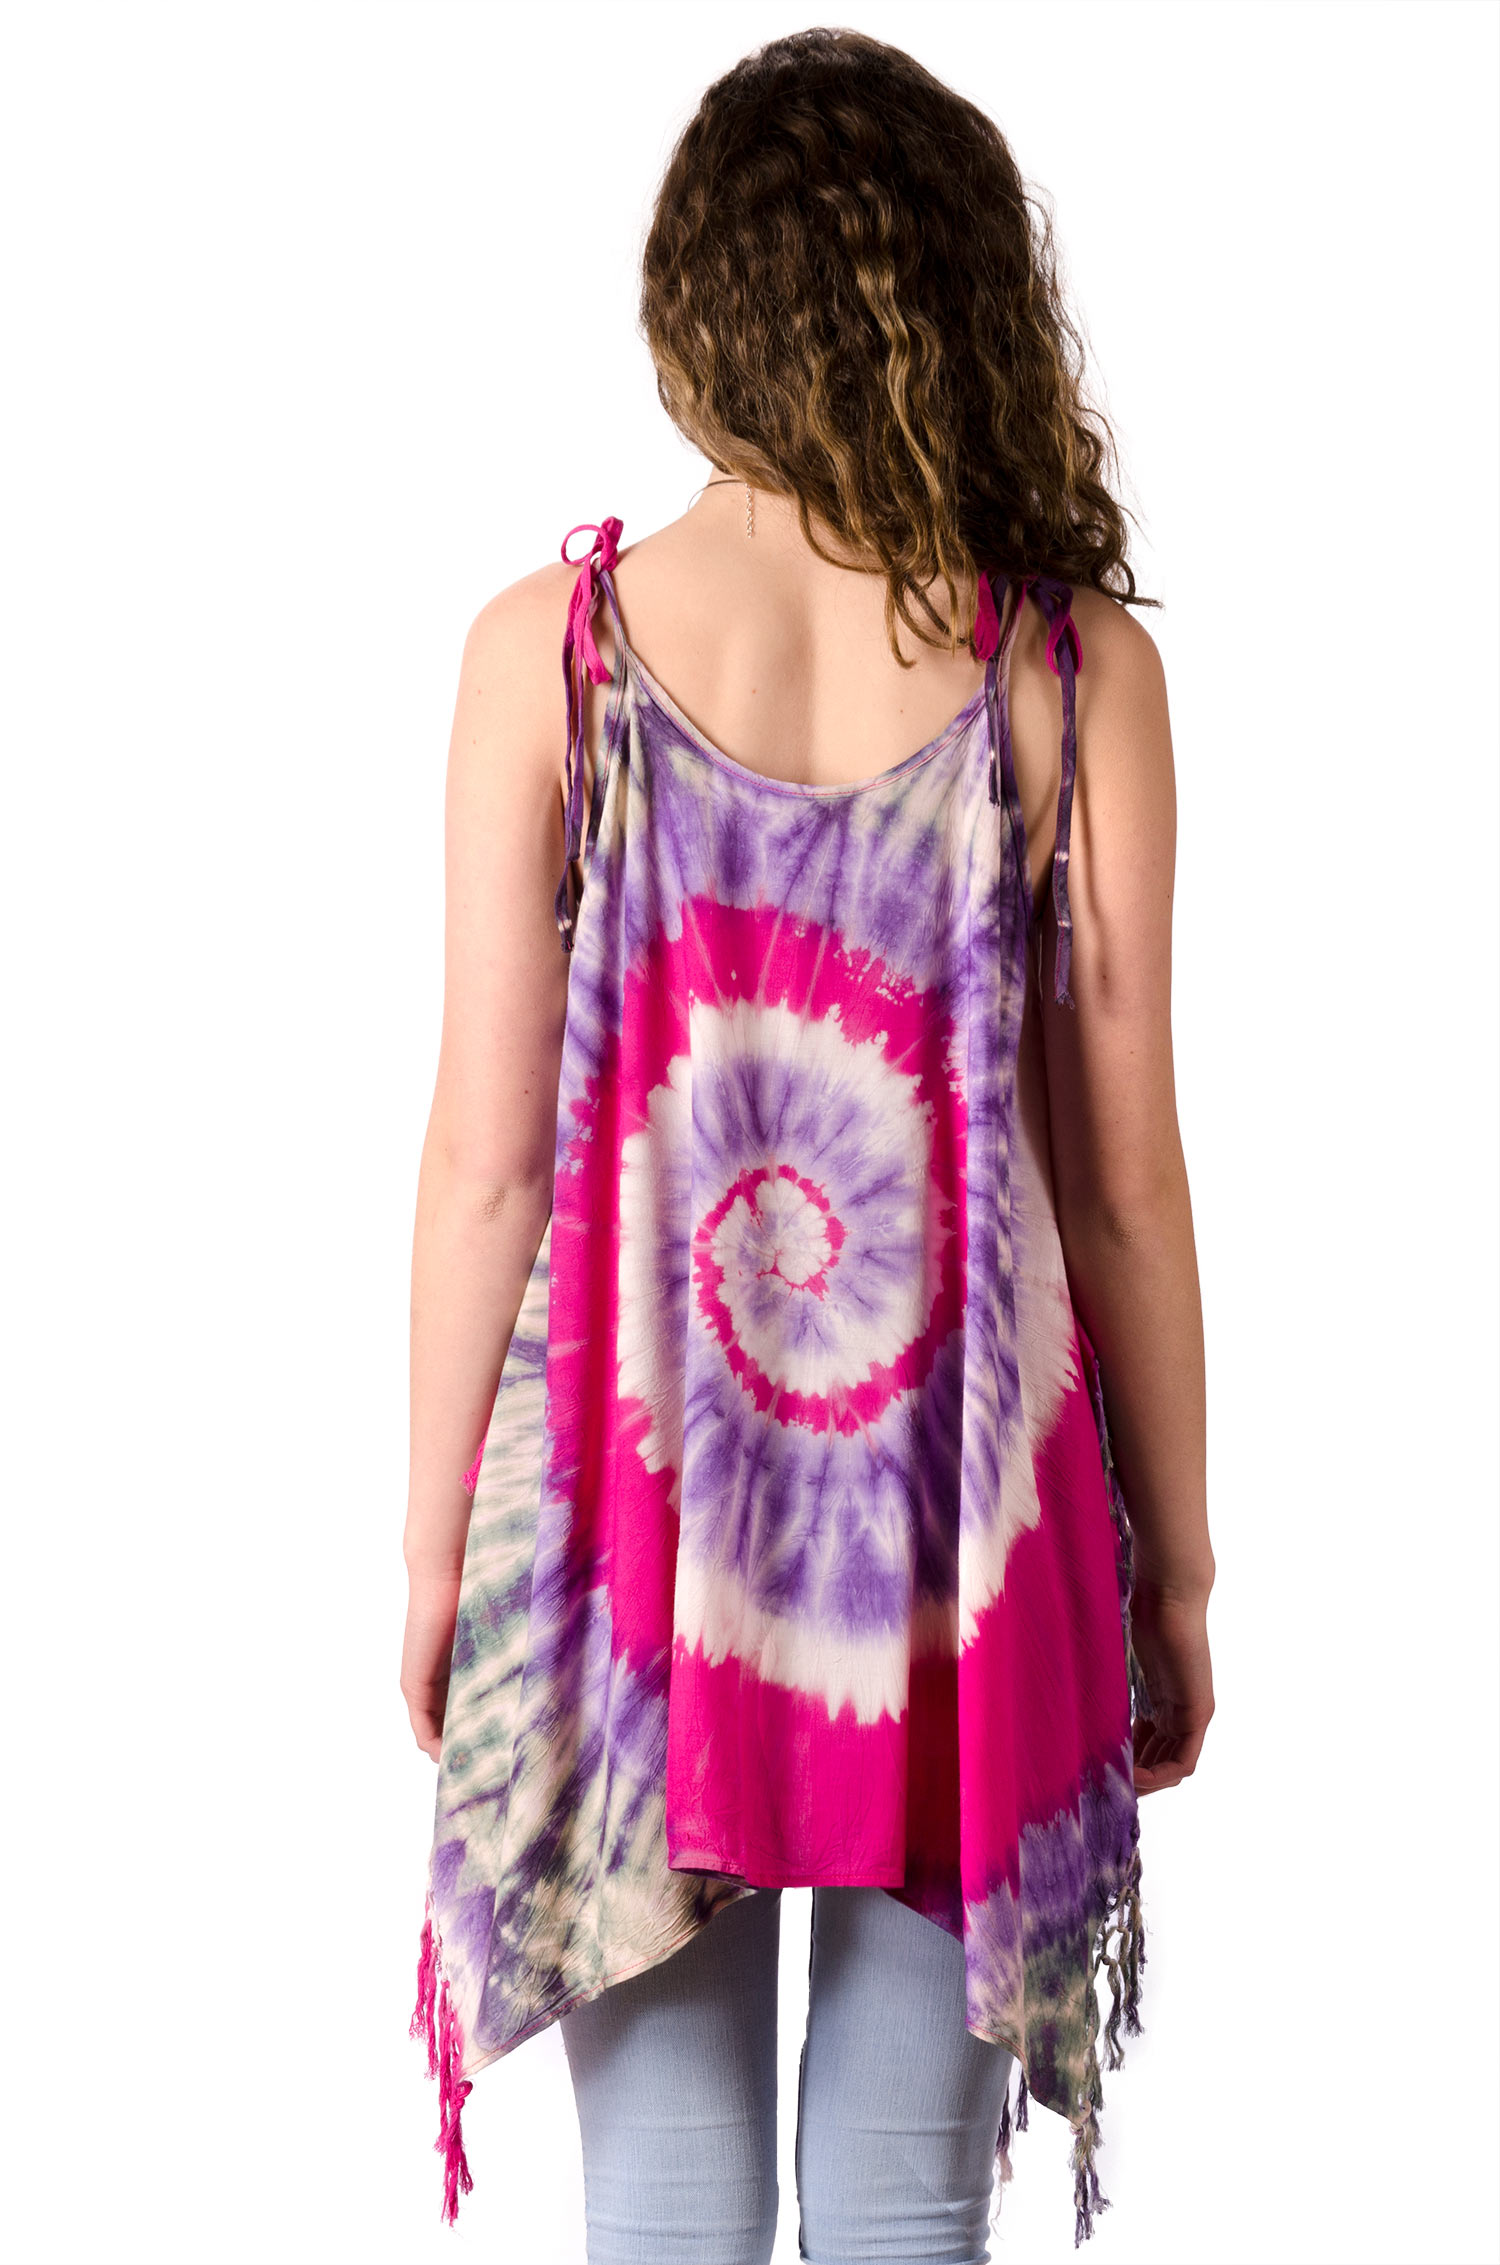 Fairy-Cut Fringed Top Hand Painted Tie Dye, Pink Lavender